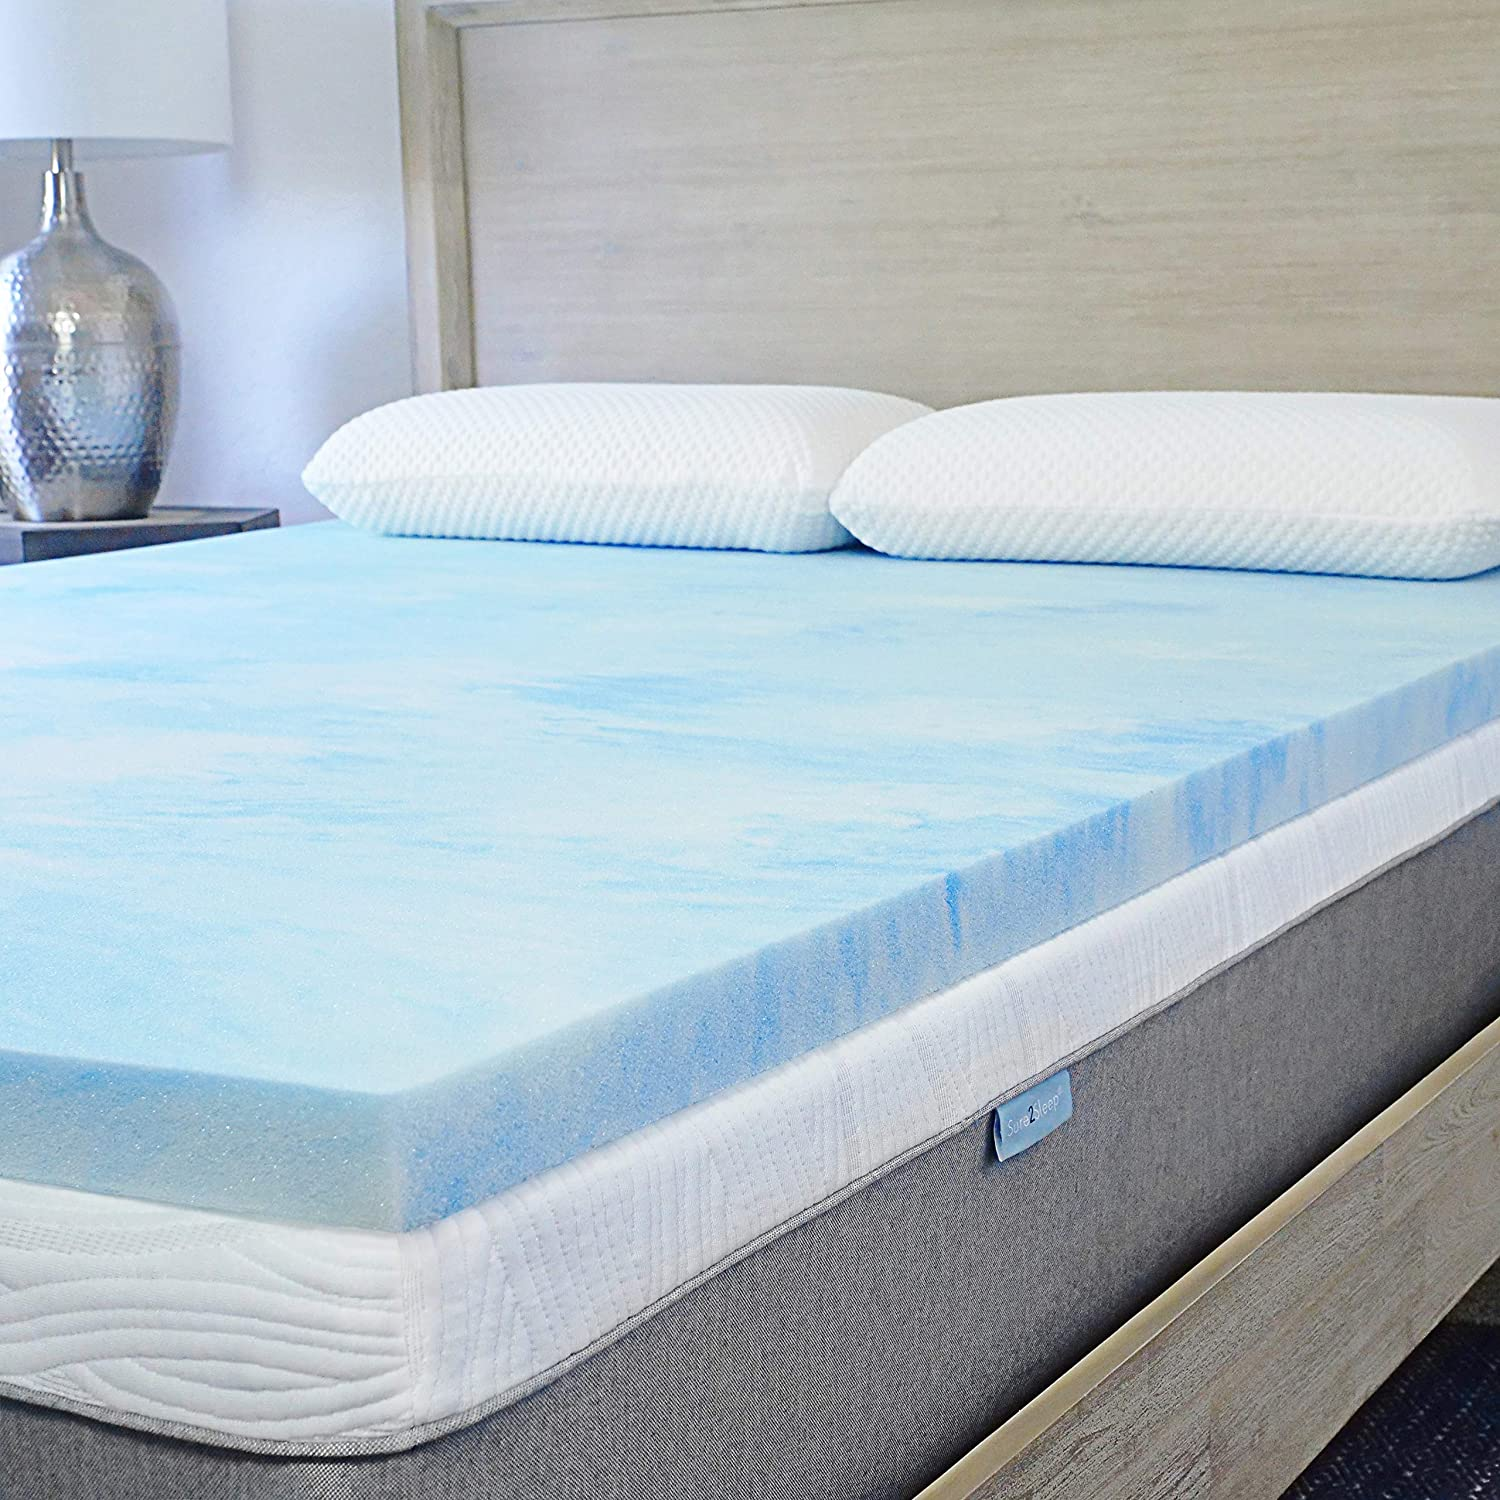 Sure2Sleep Plush 3 Pound Premium High-Density Cool Gel Swirl Memory Foam Mattress Topper Made in USA 2-Inch Twin